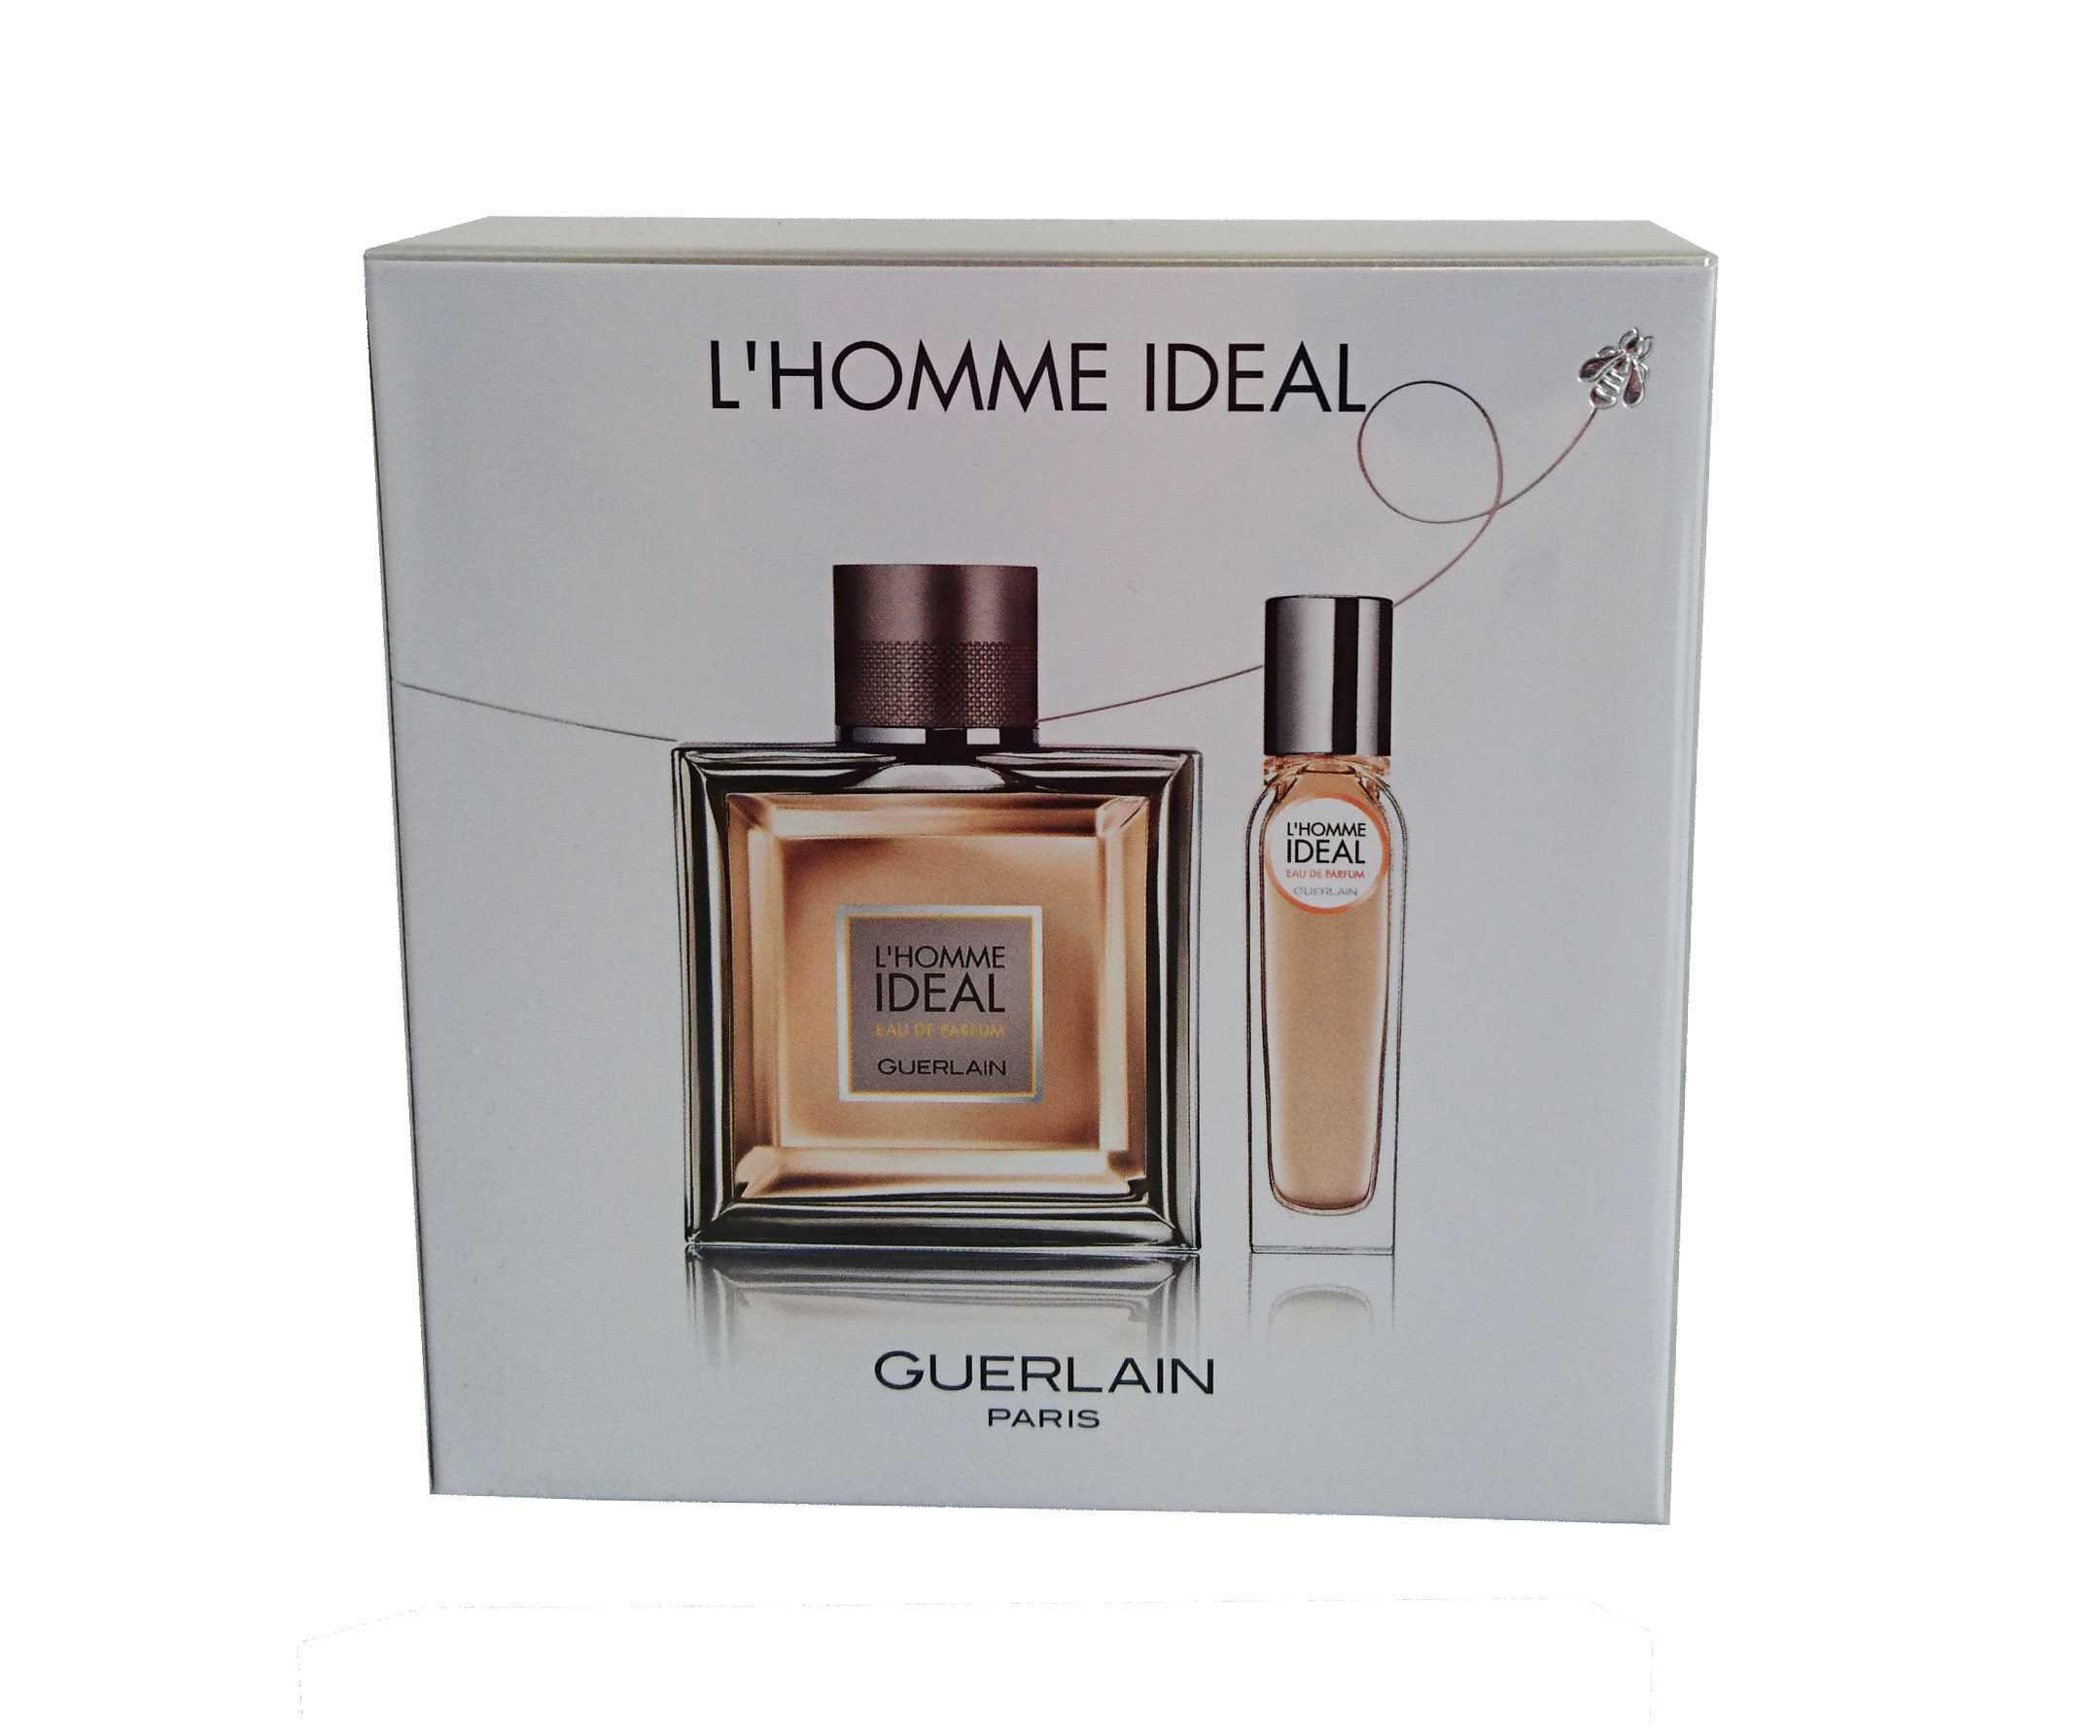 guerlain l 39 homme ideal eau de parfum 100 ml eau de parfum 15 ml travel set. Black Bedroom Furniture Sets. Home Design Ideas